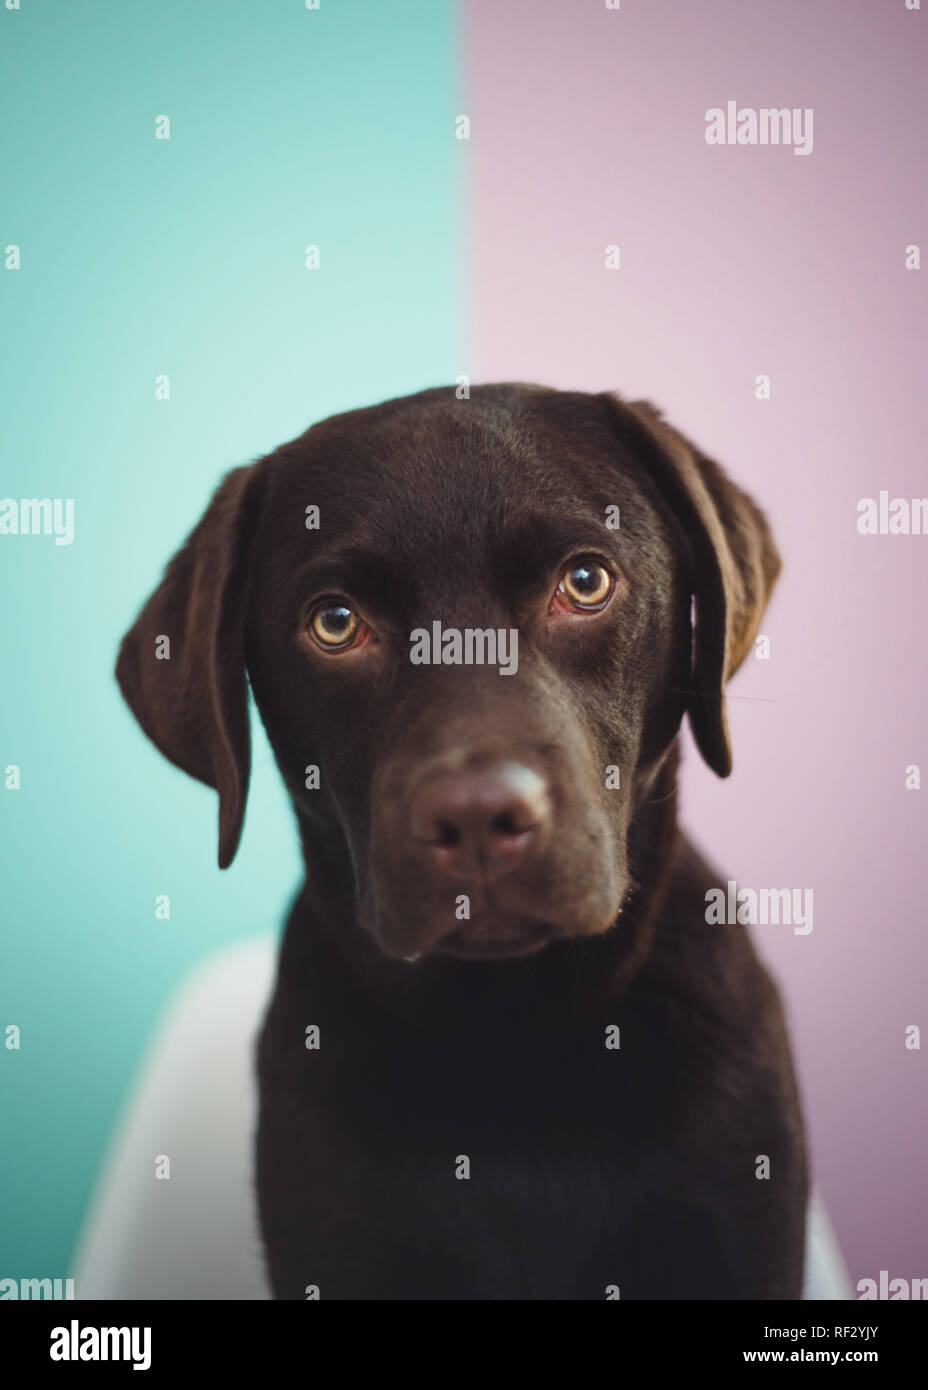 A young chocolate lab sits looking at the camera against a colorful two tone painted wall. - Stock Image